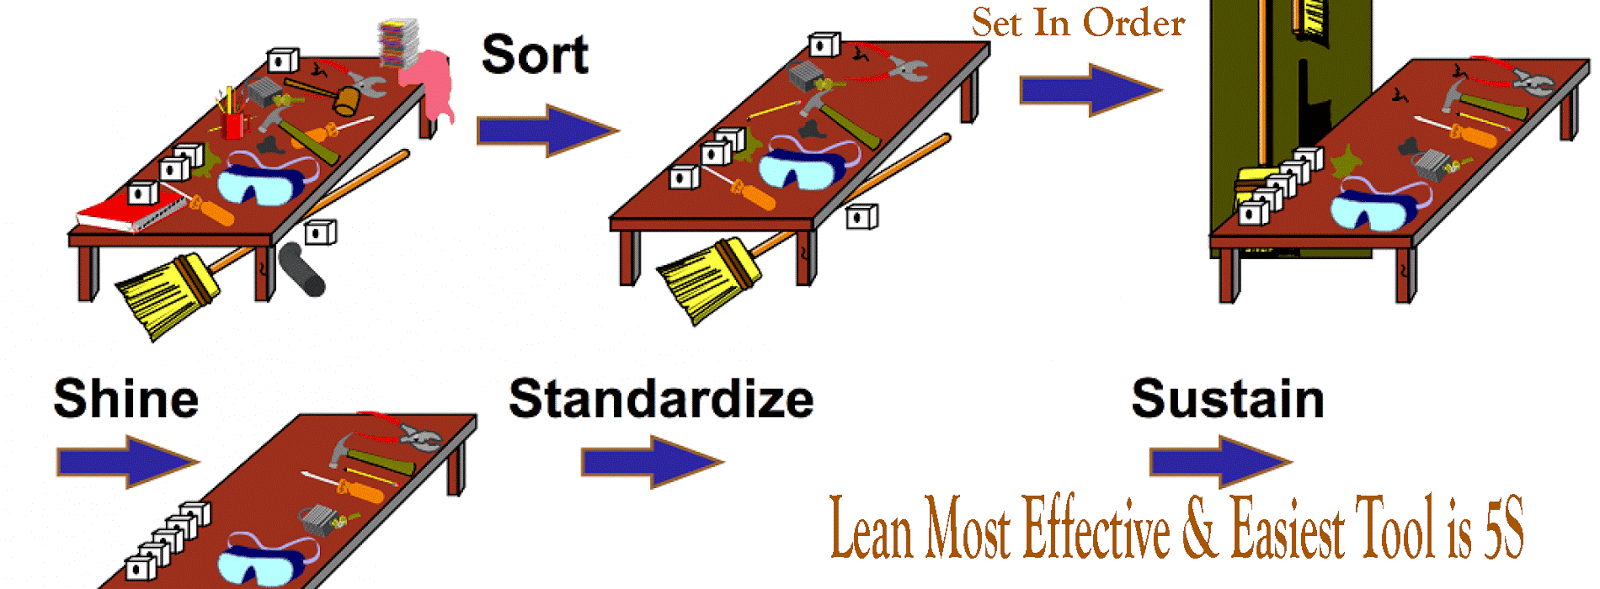 5s technique 5s is the perfect tool to identify the first improvement projects in your company to eliminate waste although sometimes viewed as a housekeeping technique, it is actually an innovative management system that helps people think lean, paving the way for the adoption of lean principles in the organization .